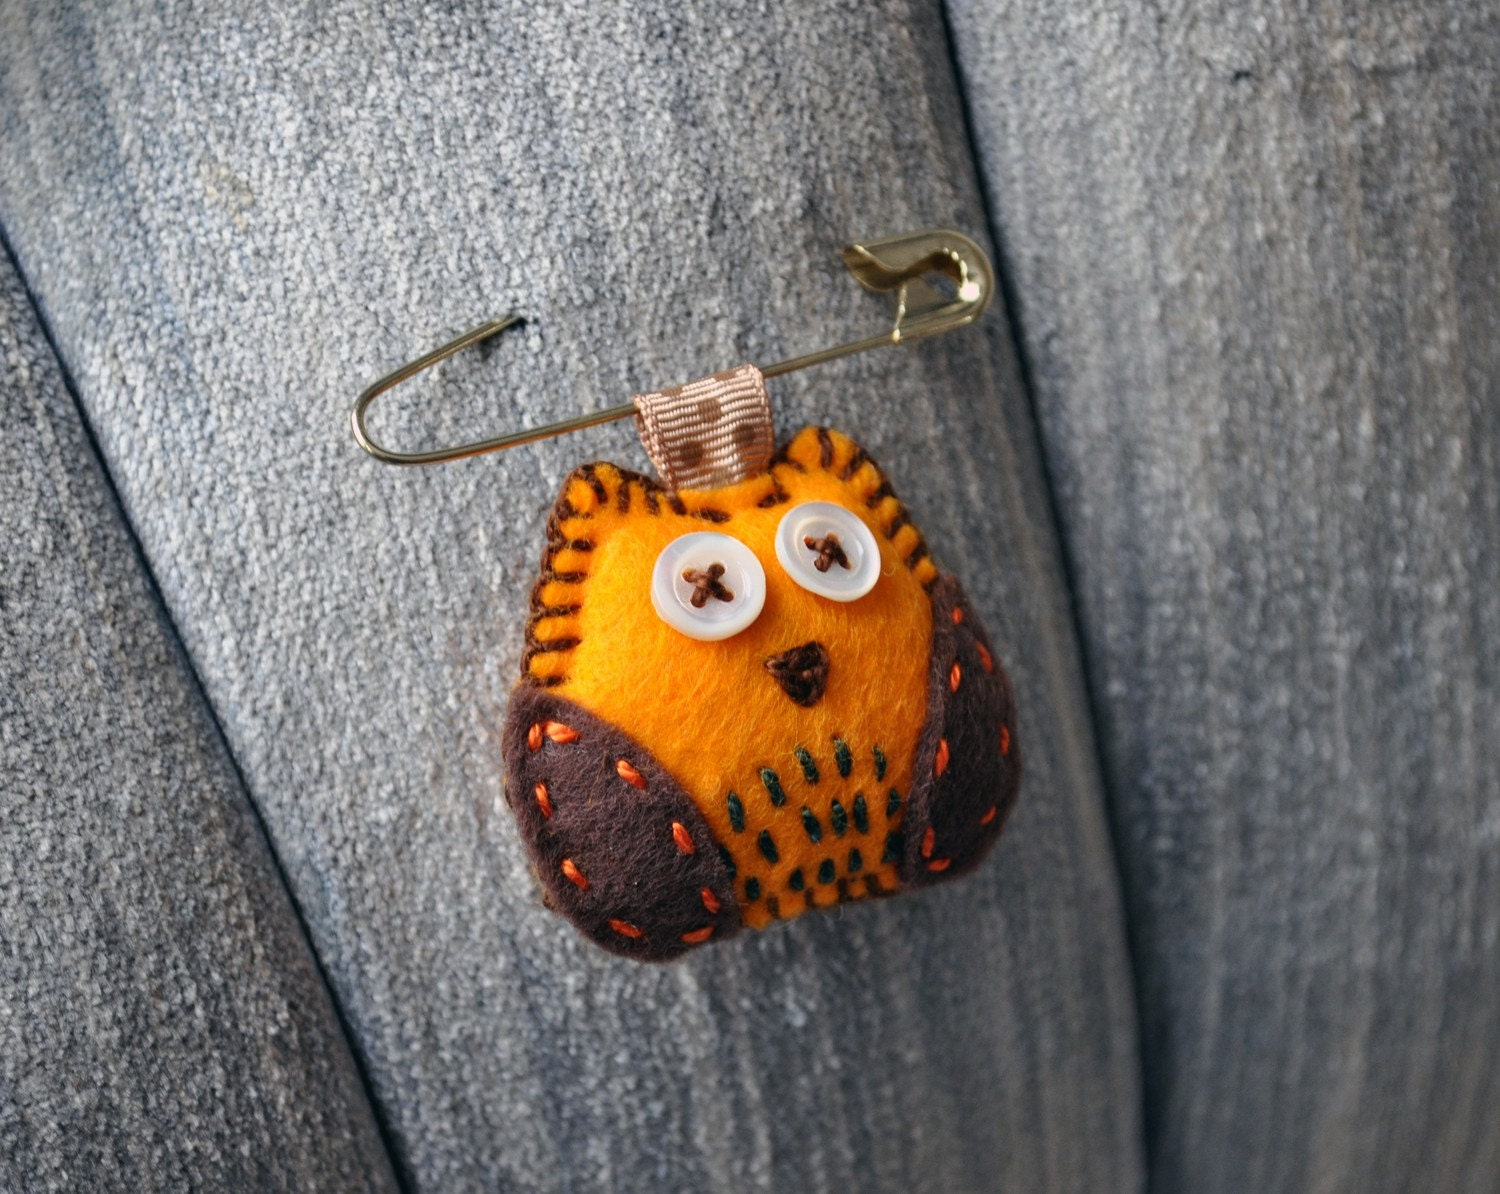 Tiny Owl Brooch - mini owl plush as a brooch - Wearables plush series from Hibou